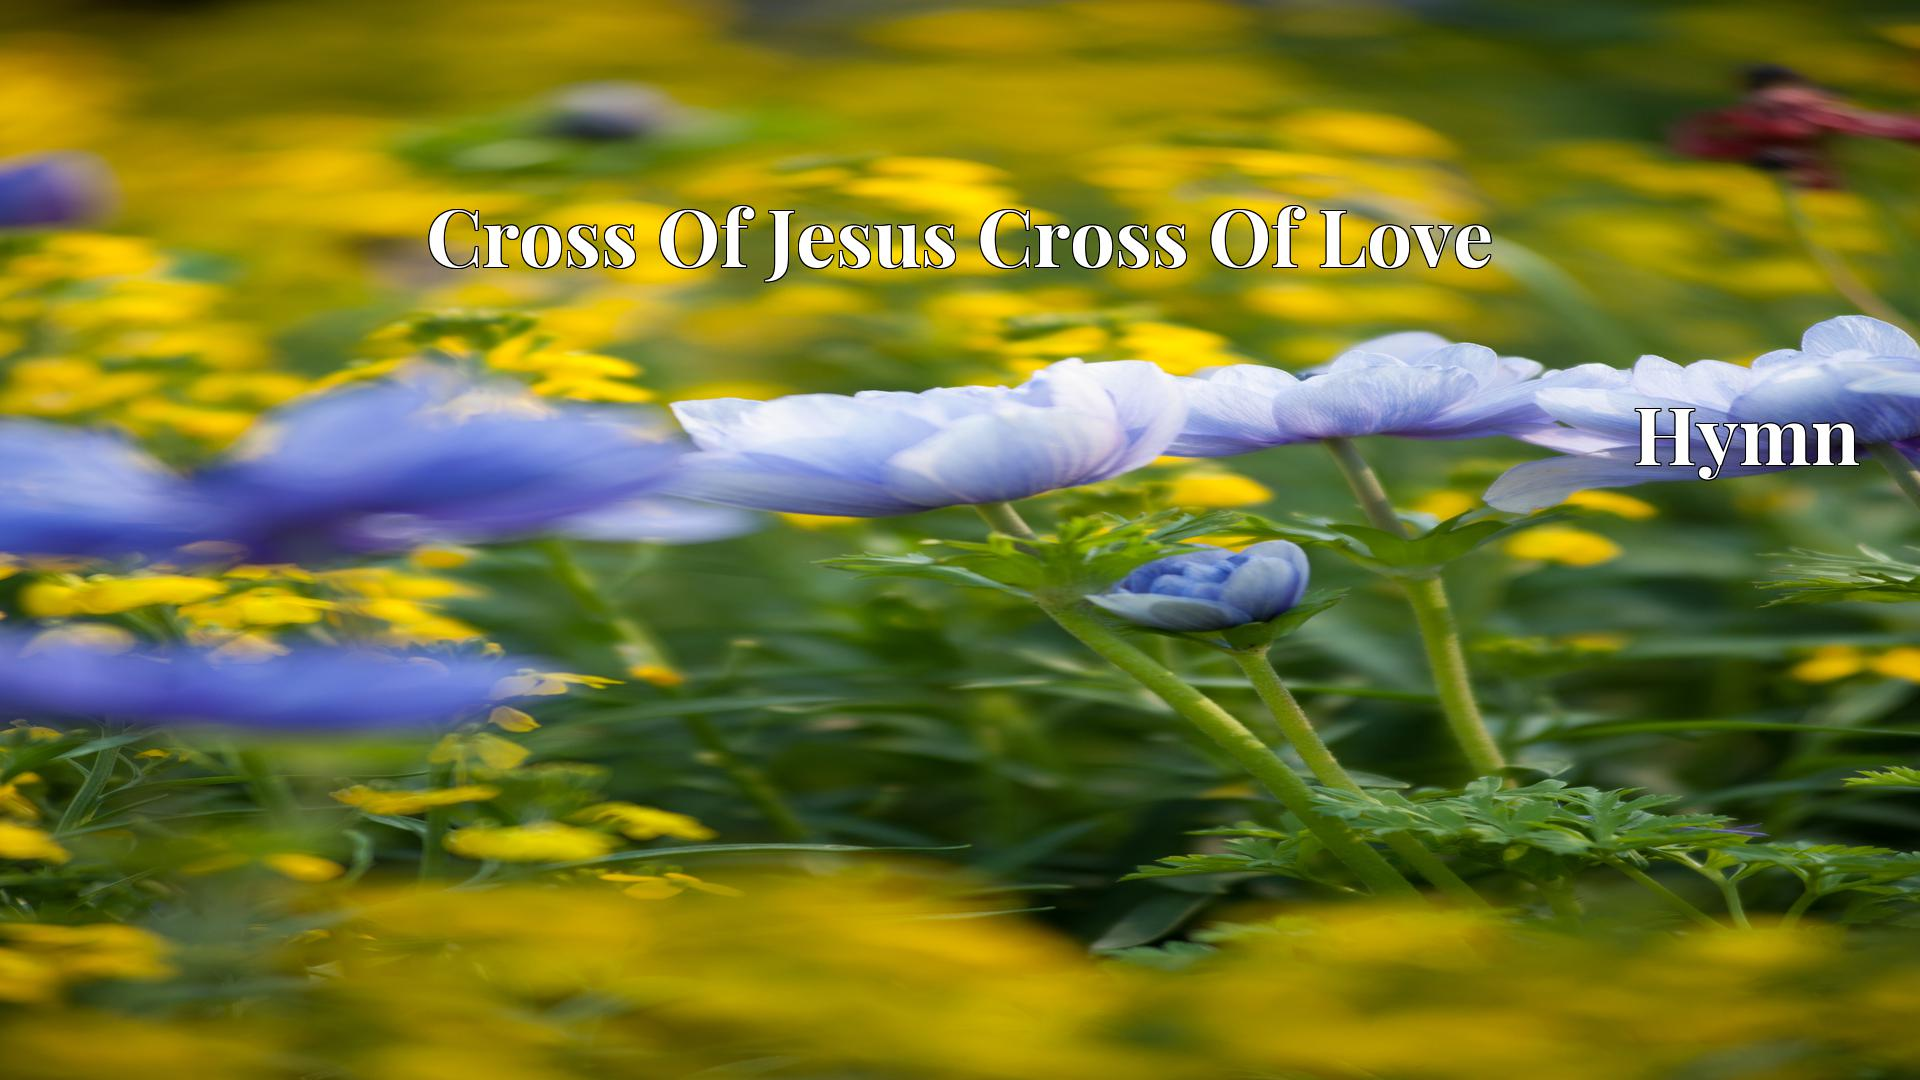 Cross Of Jesus Cross Of Love - Hymn